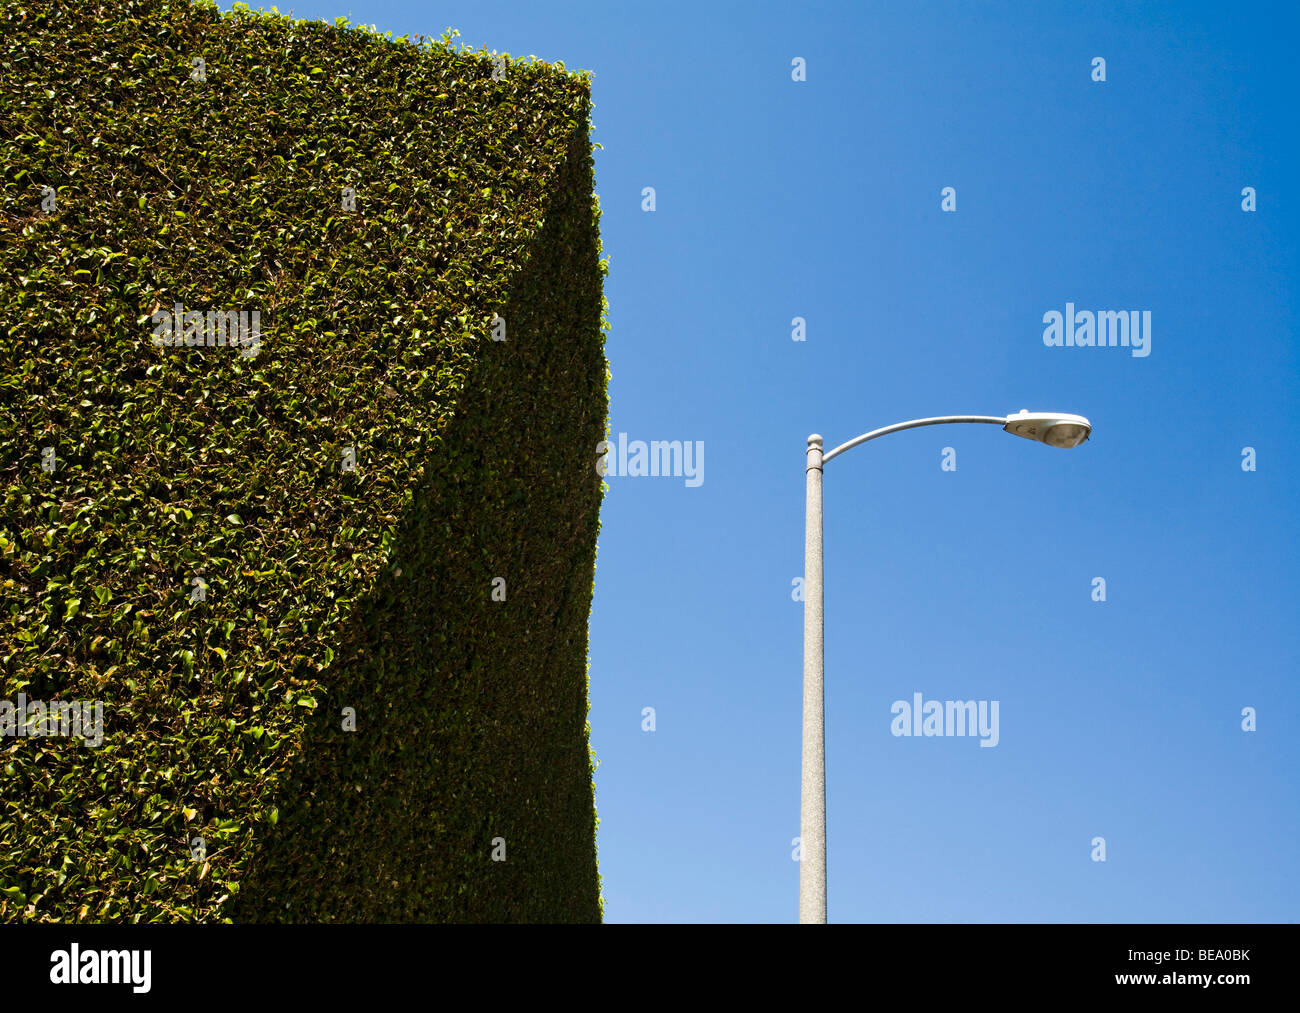 Gigantic Hedge, Los Angeles County, California, United States of America - Stock Image